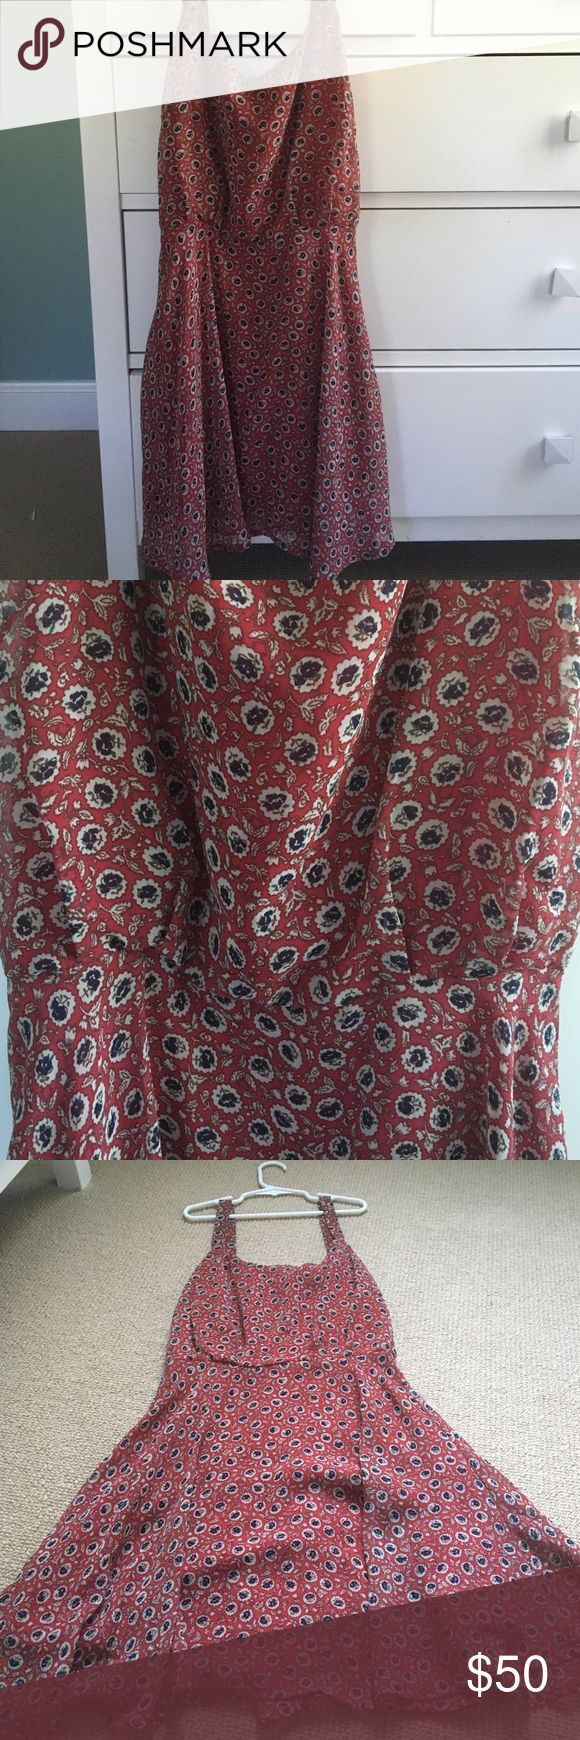 Lucca Couture Red Dress Red dress with blue floral pattern. Zips half-way down the back. Size small, only worn once! Perfect condition. I love this dress I'm just selling it because it's too small on me now. Brand is Lucca Couture from Urban Putfitters. Urban Outfitters Dresses Mini